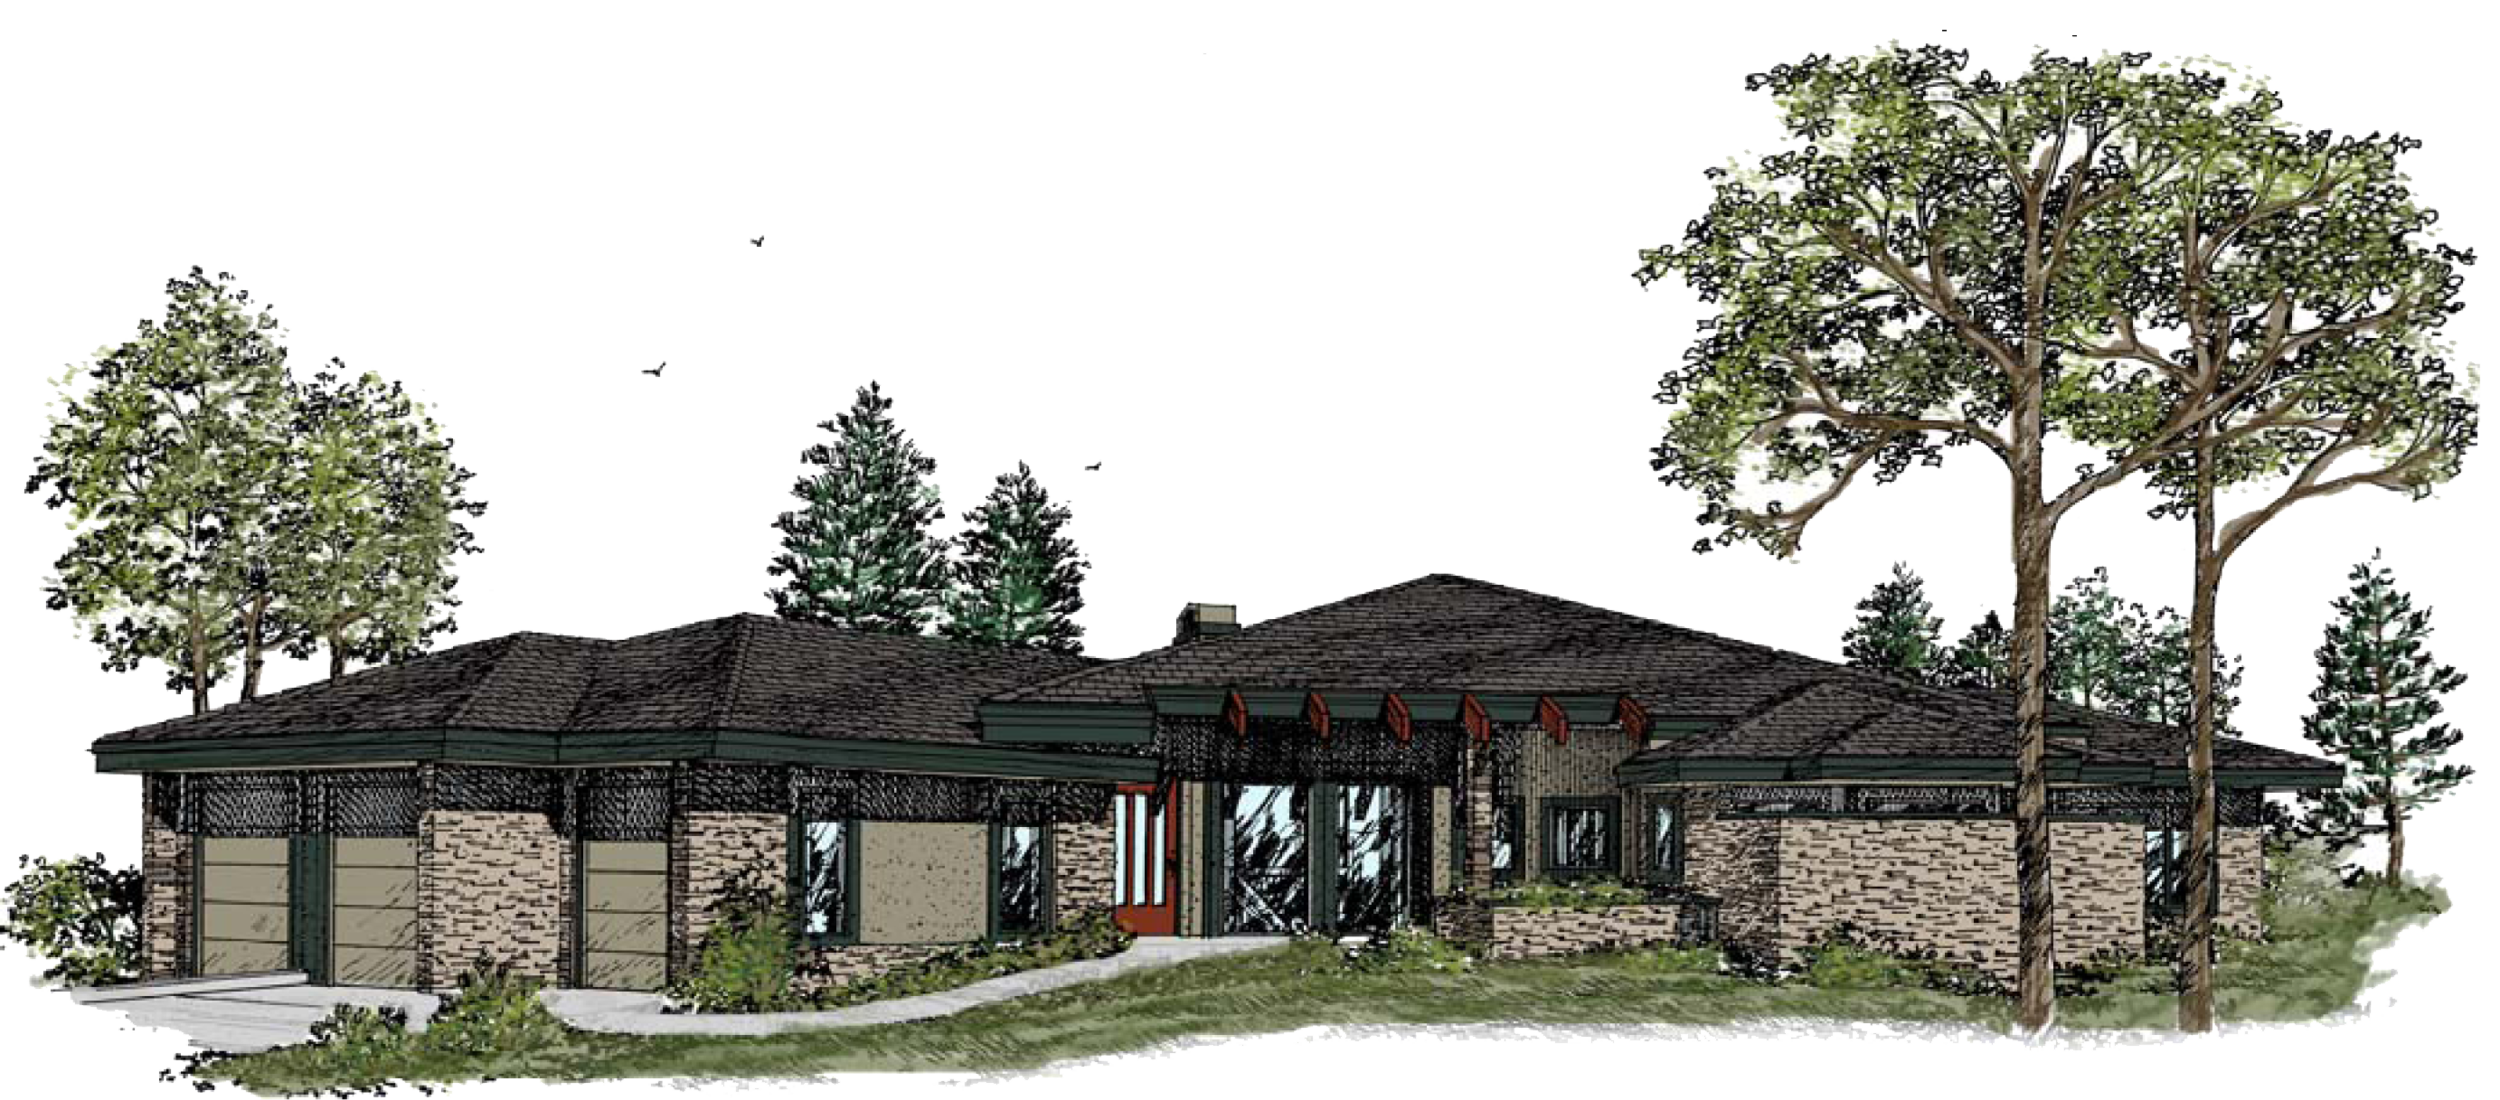 Prairie style features:   - Strong horizontal emphasis, goal of integrating the home with nature in an organic manner    - Prominent central chimney    - Clerestory windows for natural light, and casement windows arranged in bands    - Stylized, built-in cabinetry    - Leaded or nature themed stained glass windows    - Open floor plans with airy flow    - Widespread use of natural stone and local wood    - Ranch style is common, as are two-story homes with single story wings